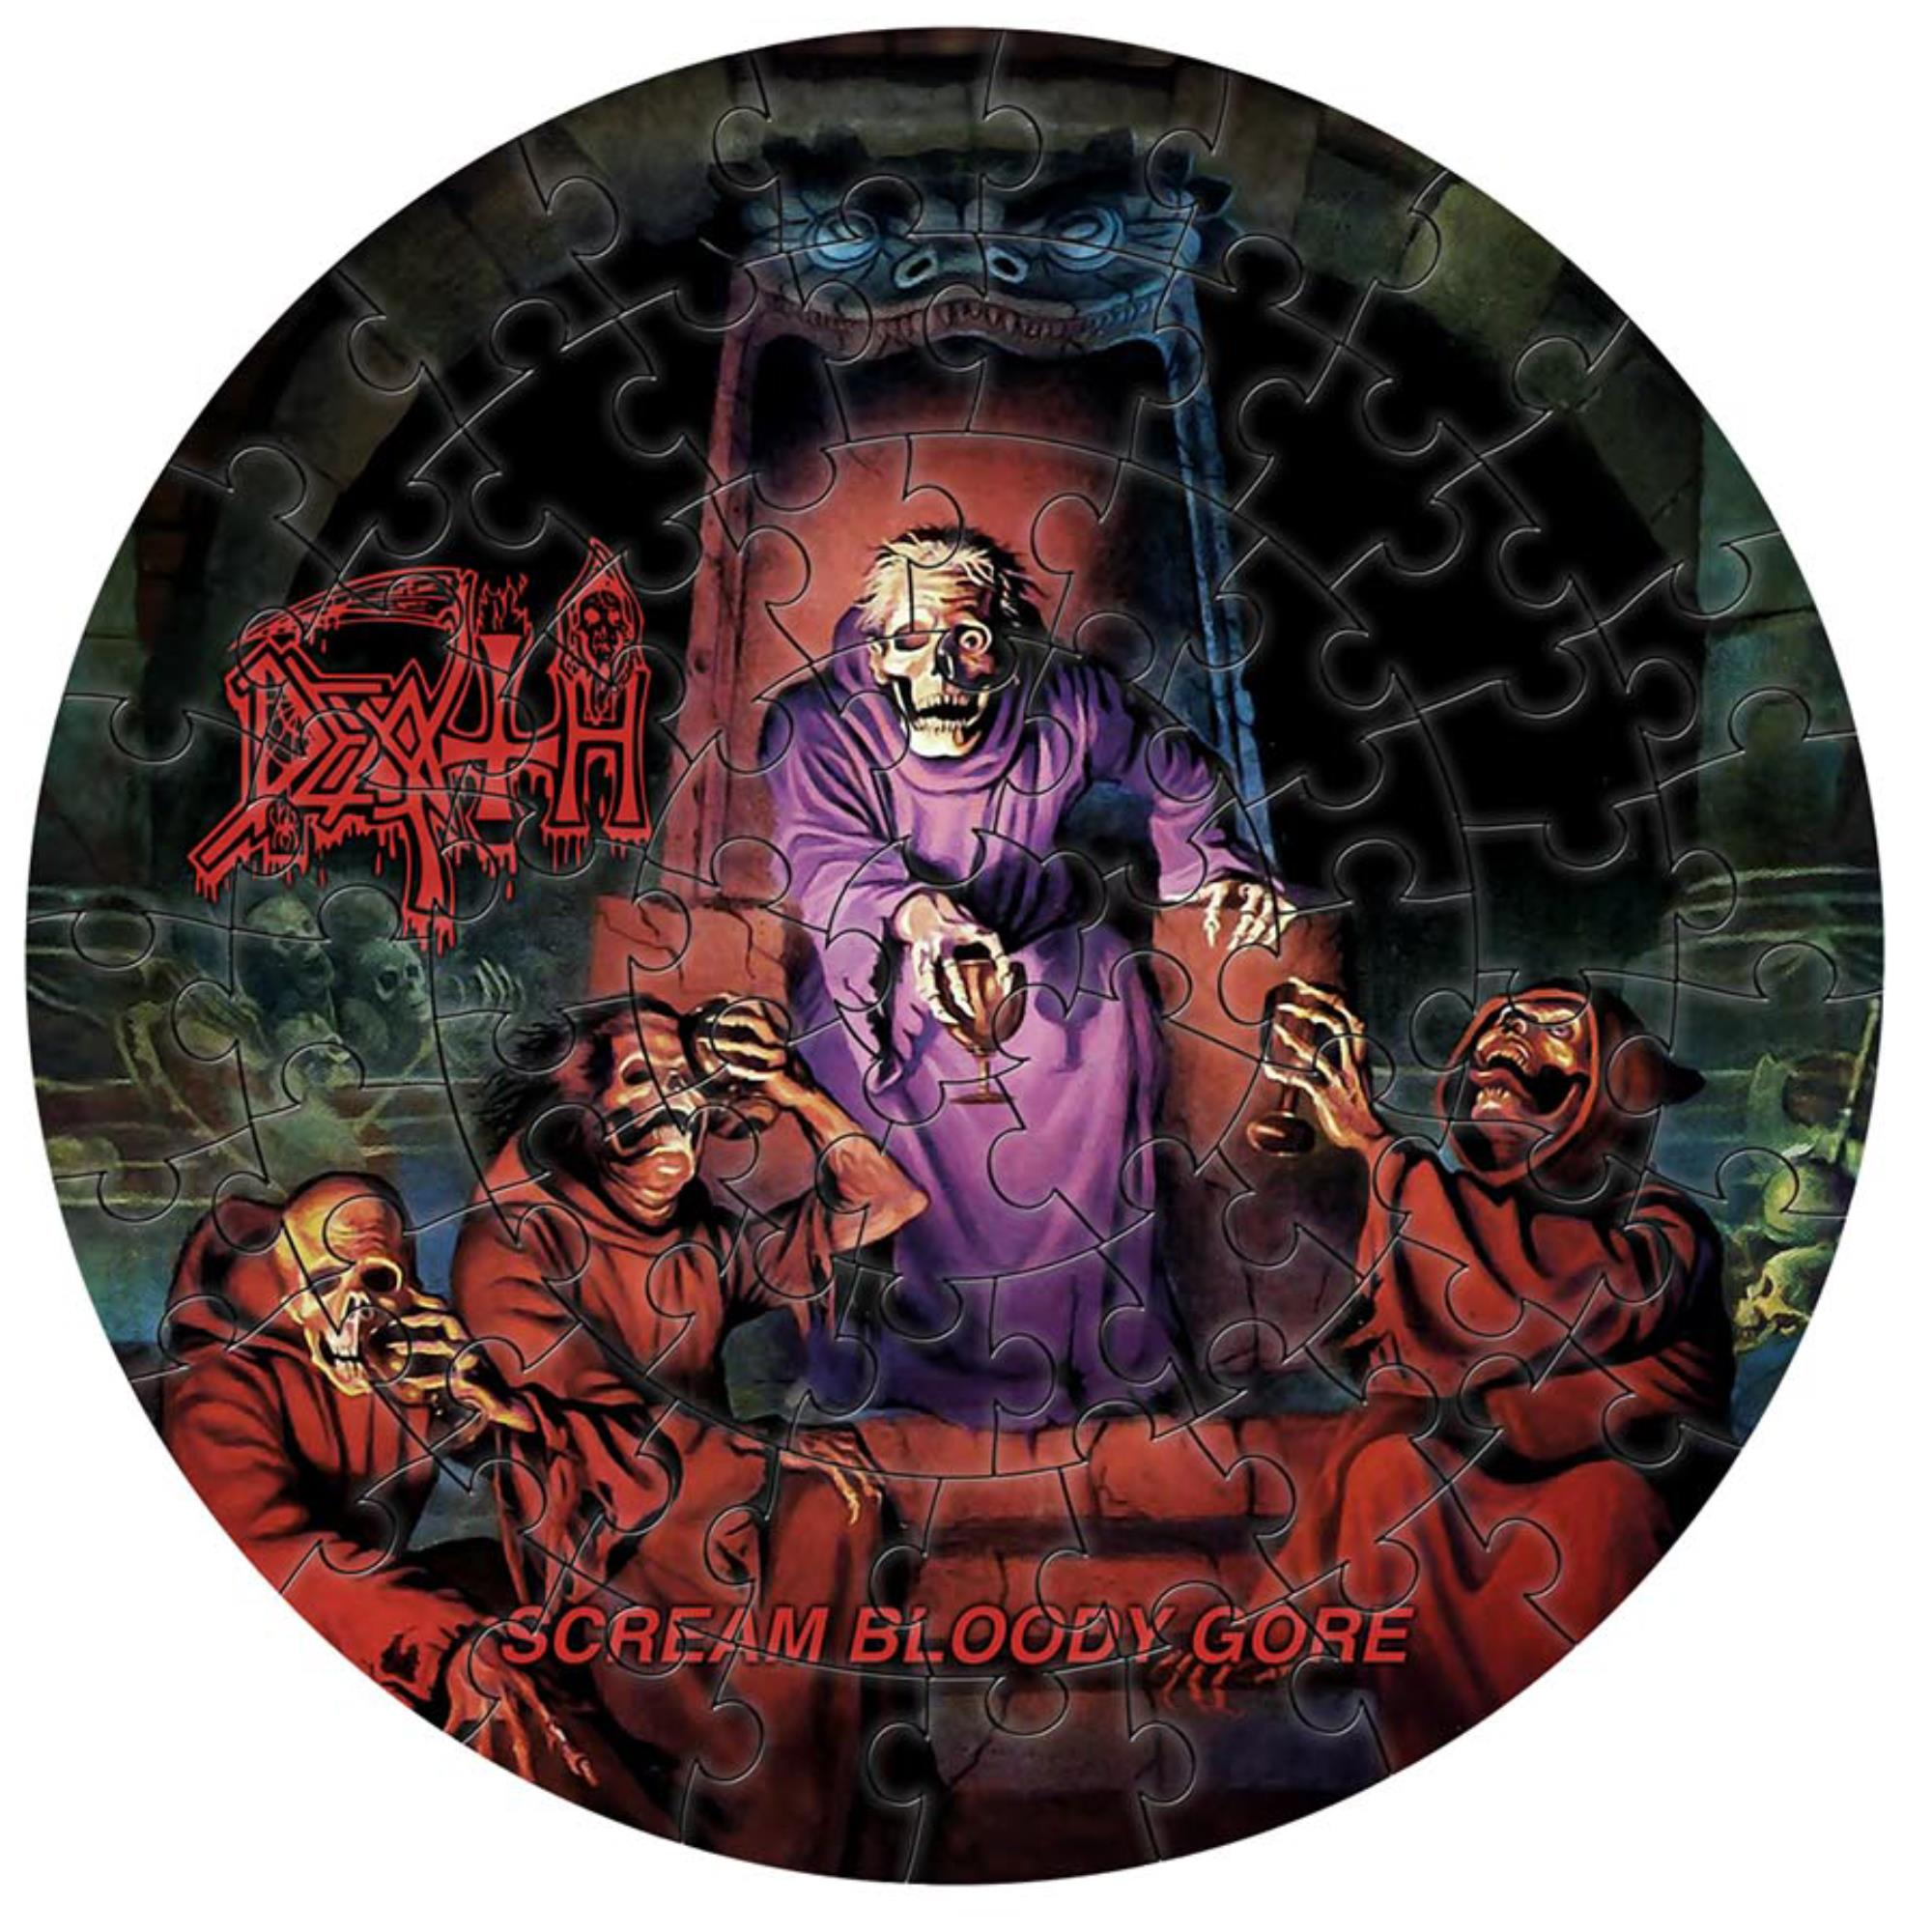 Scream Bloody Gore Jigsaw Puzzle